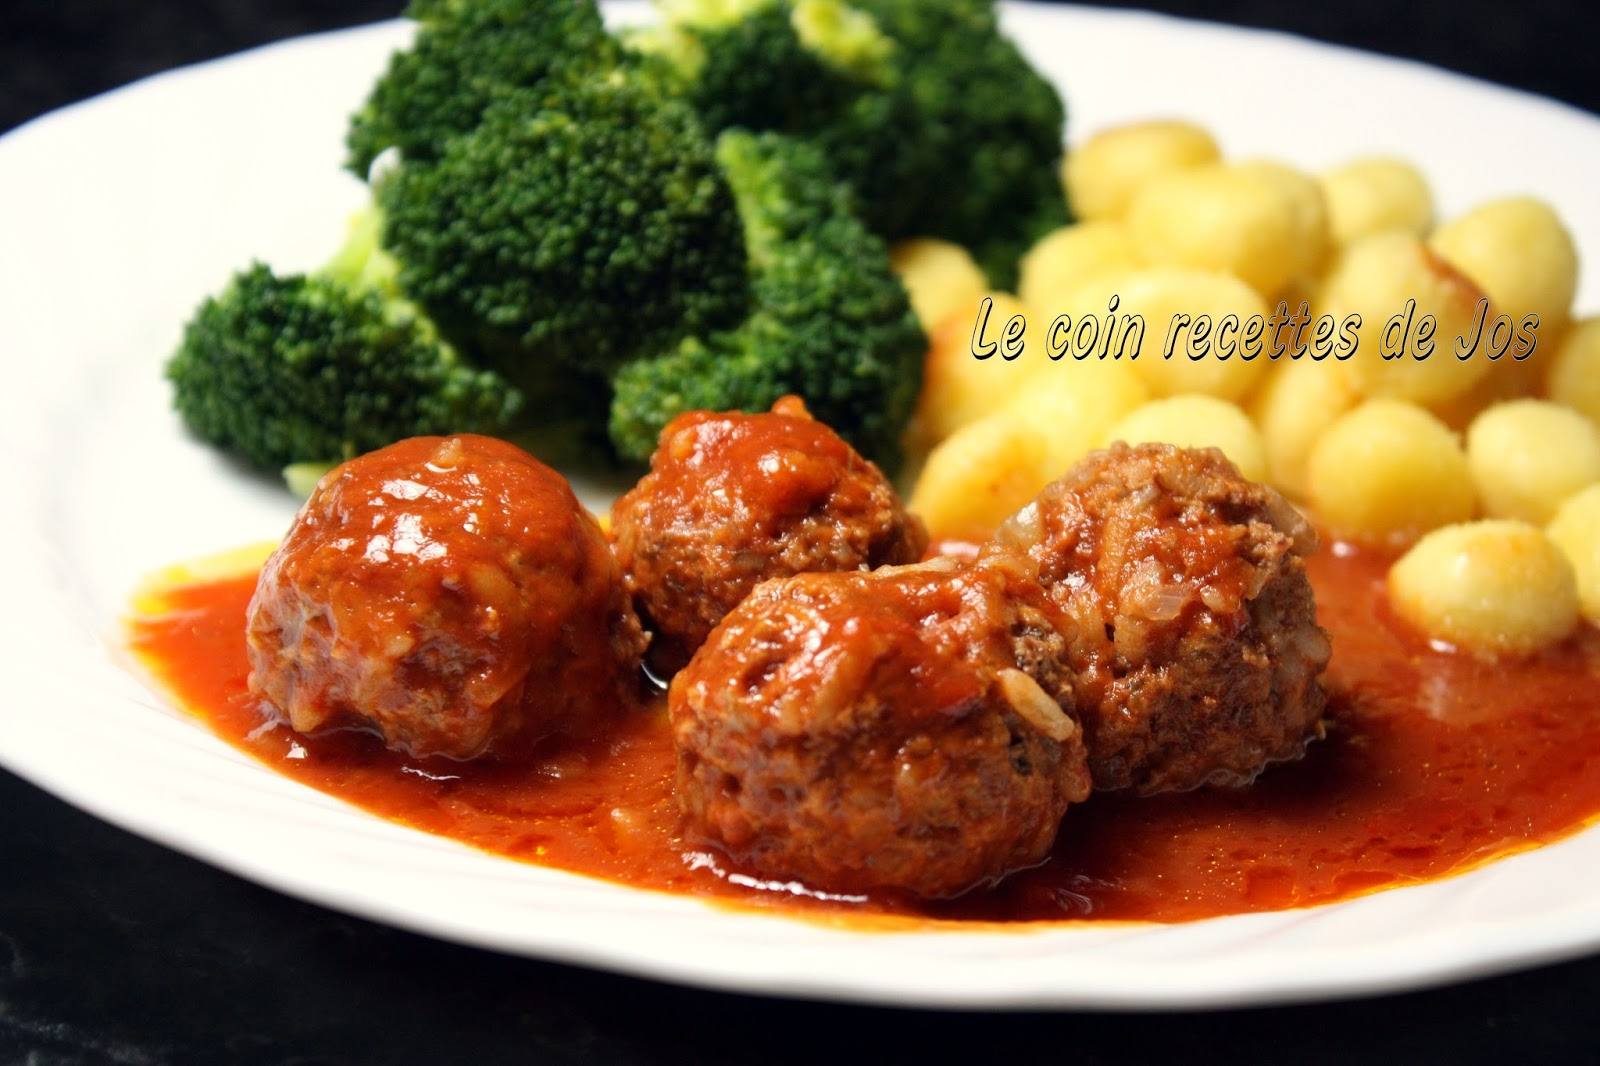 le coin recettes de jos boulettes de boeuf au riz en sauce tomate. Black Bedroom Furniture Sets. Home Design Ideas